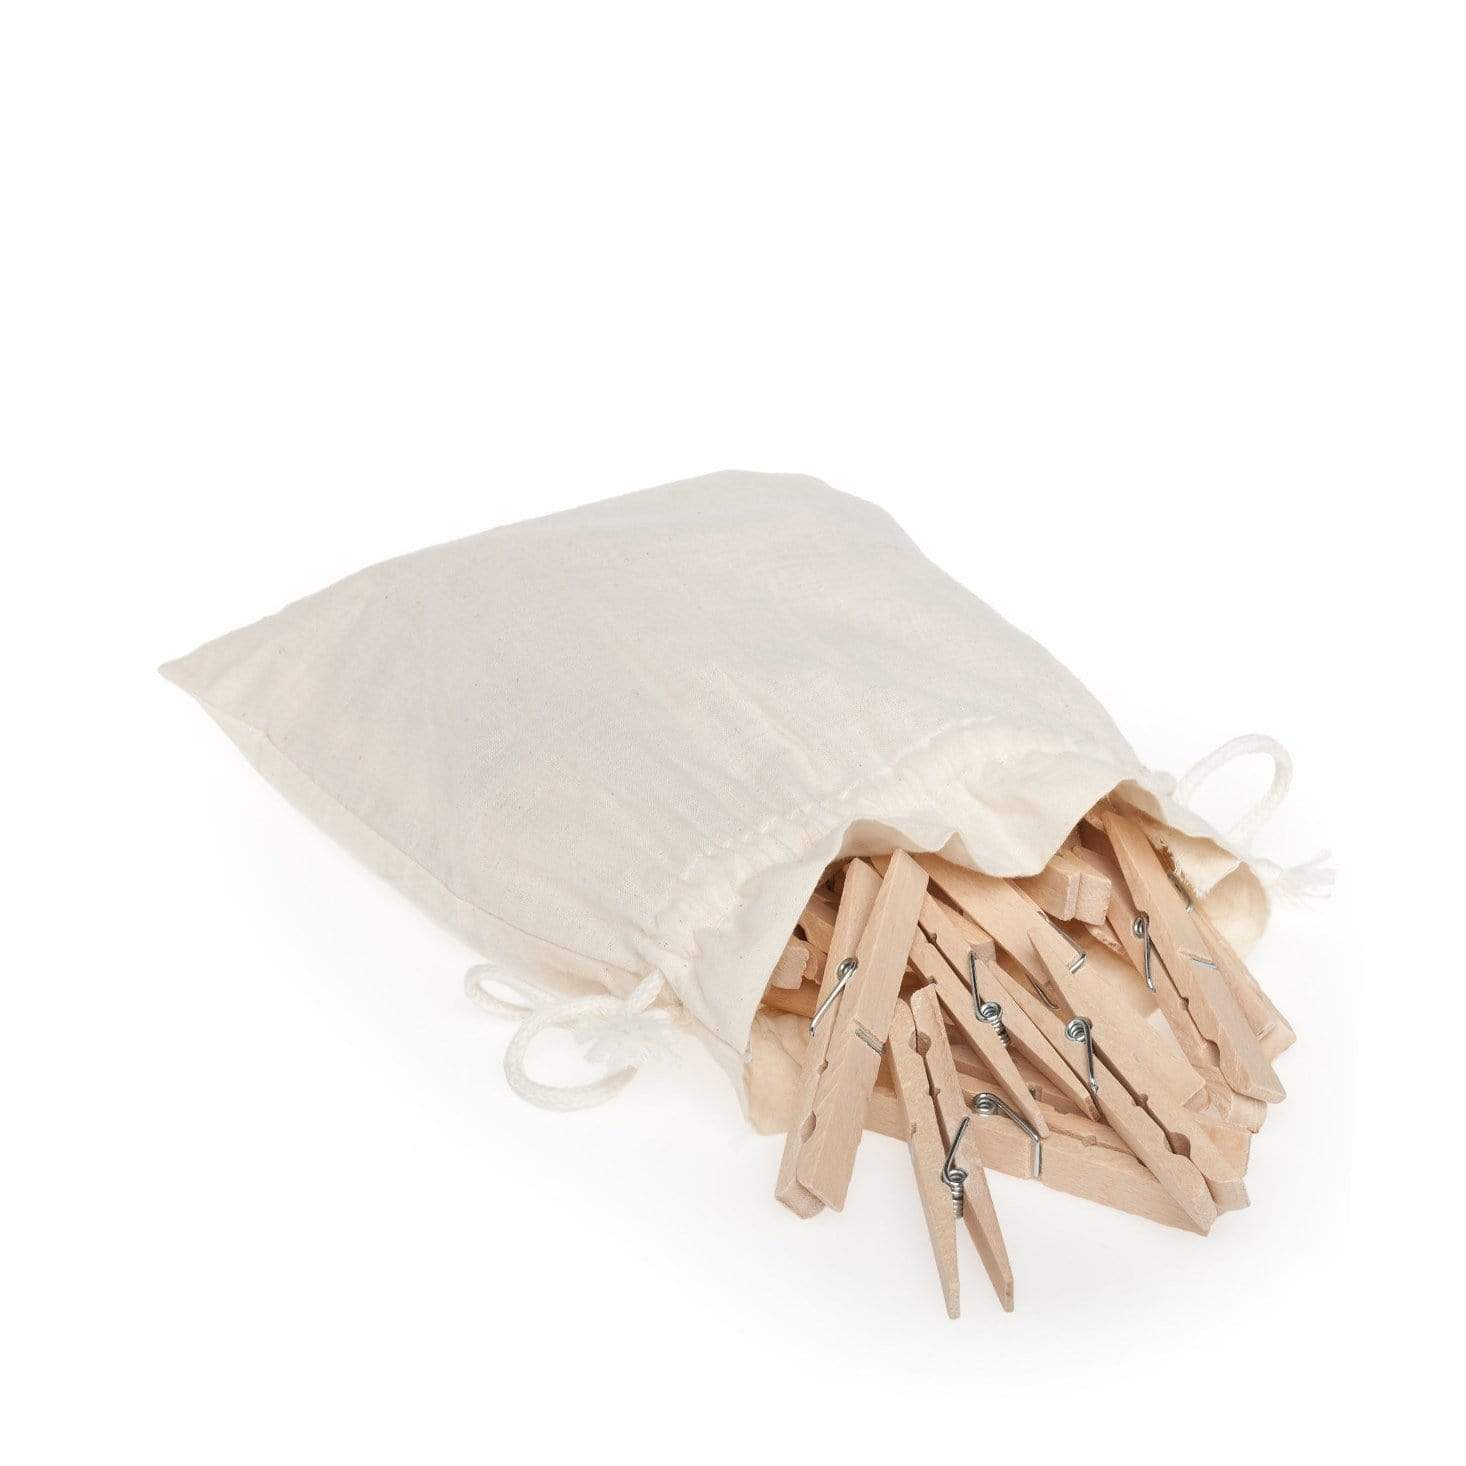 Clothes Pegs in Cotton Bag